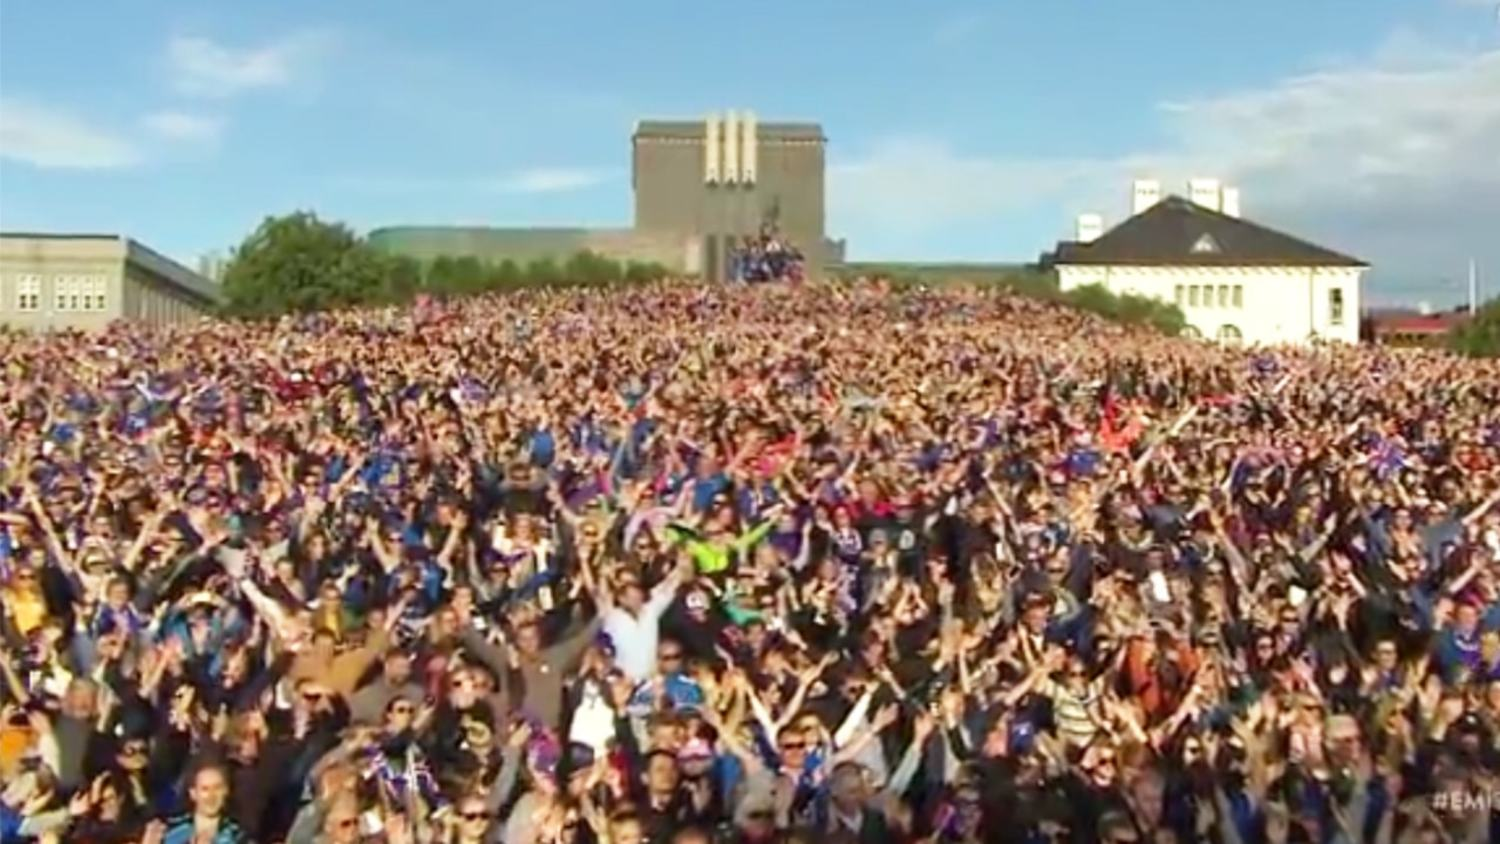 Iceland Team's Epic 'Viking Clap' Homecoming In Front of 30,000 Fans